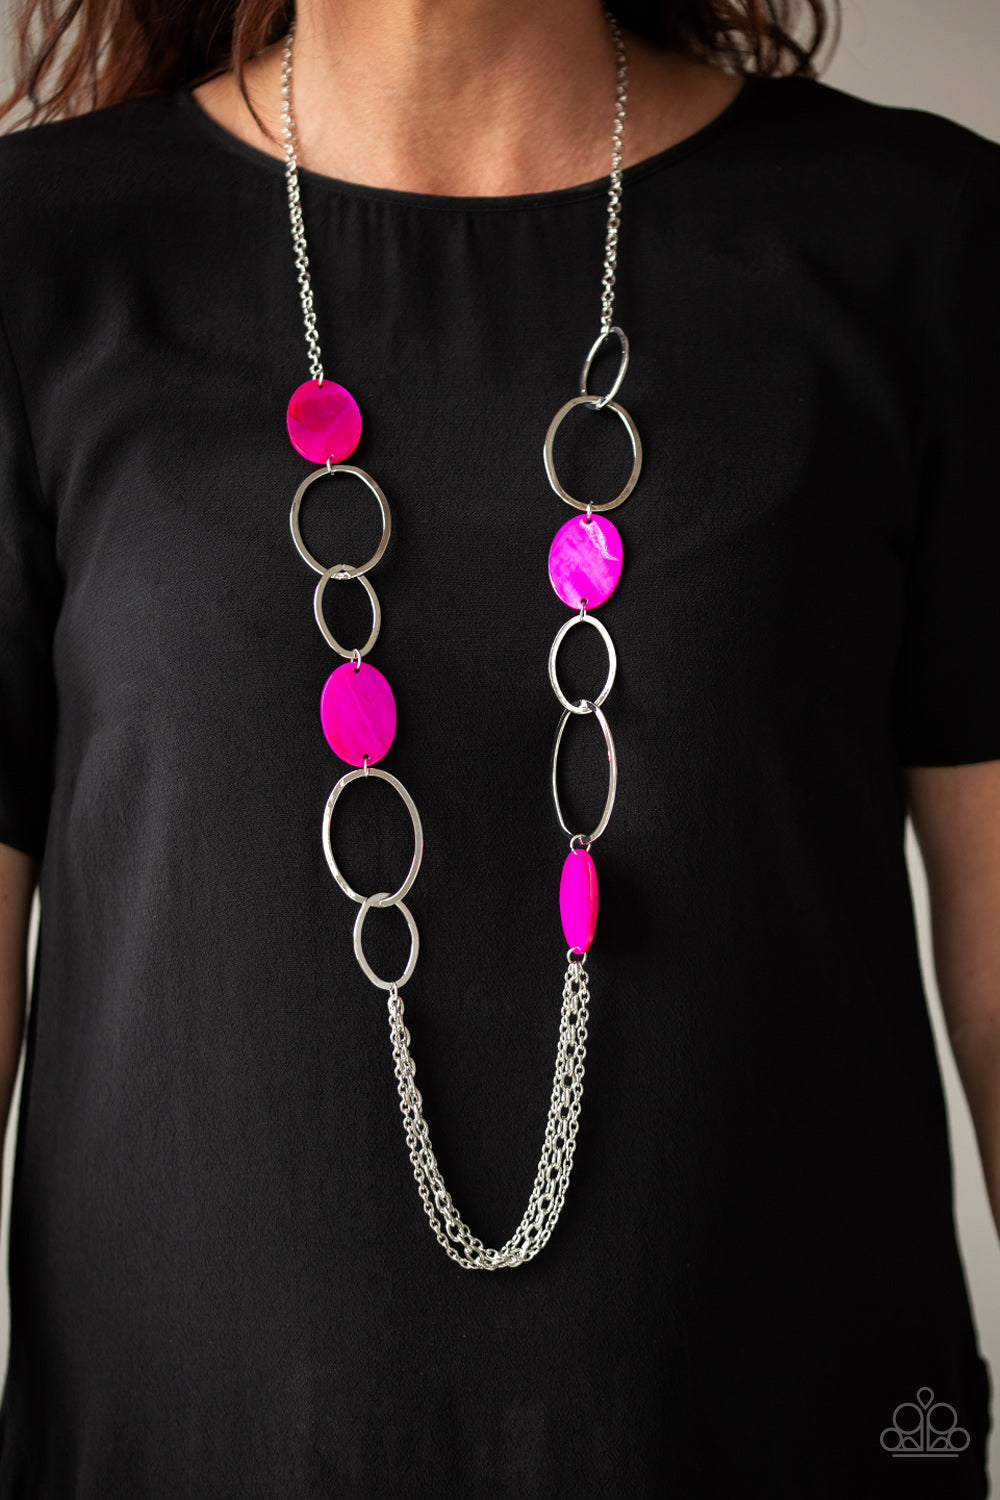 Paparazzi Accessories Kaleidoscope Coasts - Pink Necklaces - Lady T Accessories